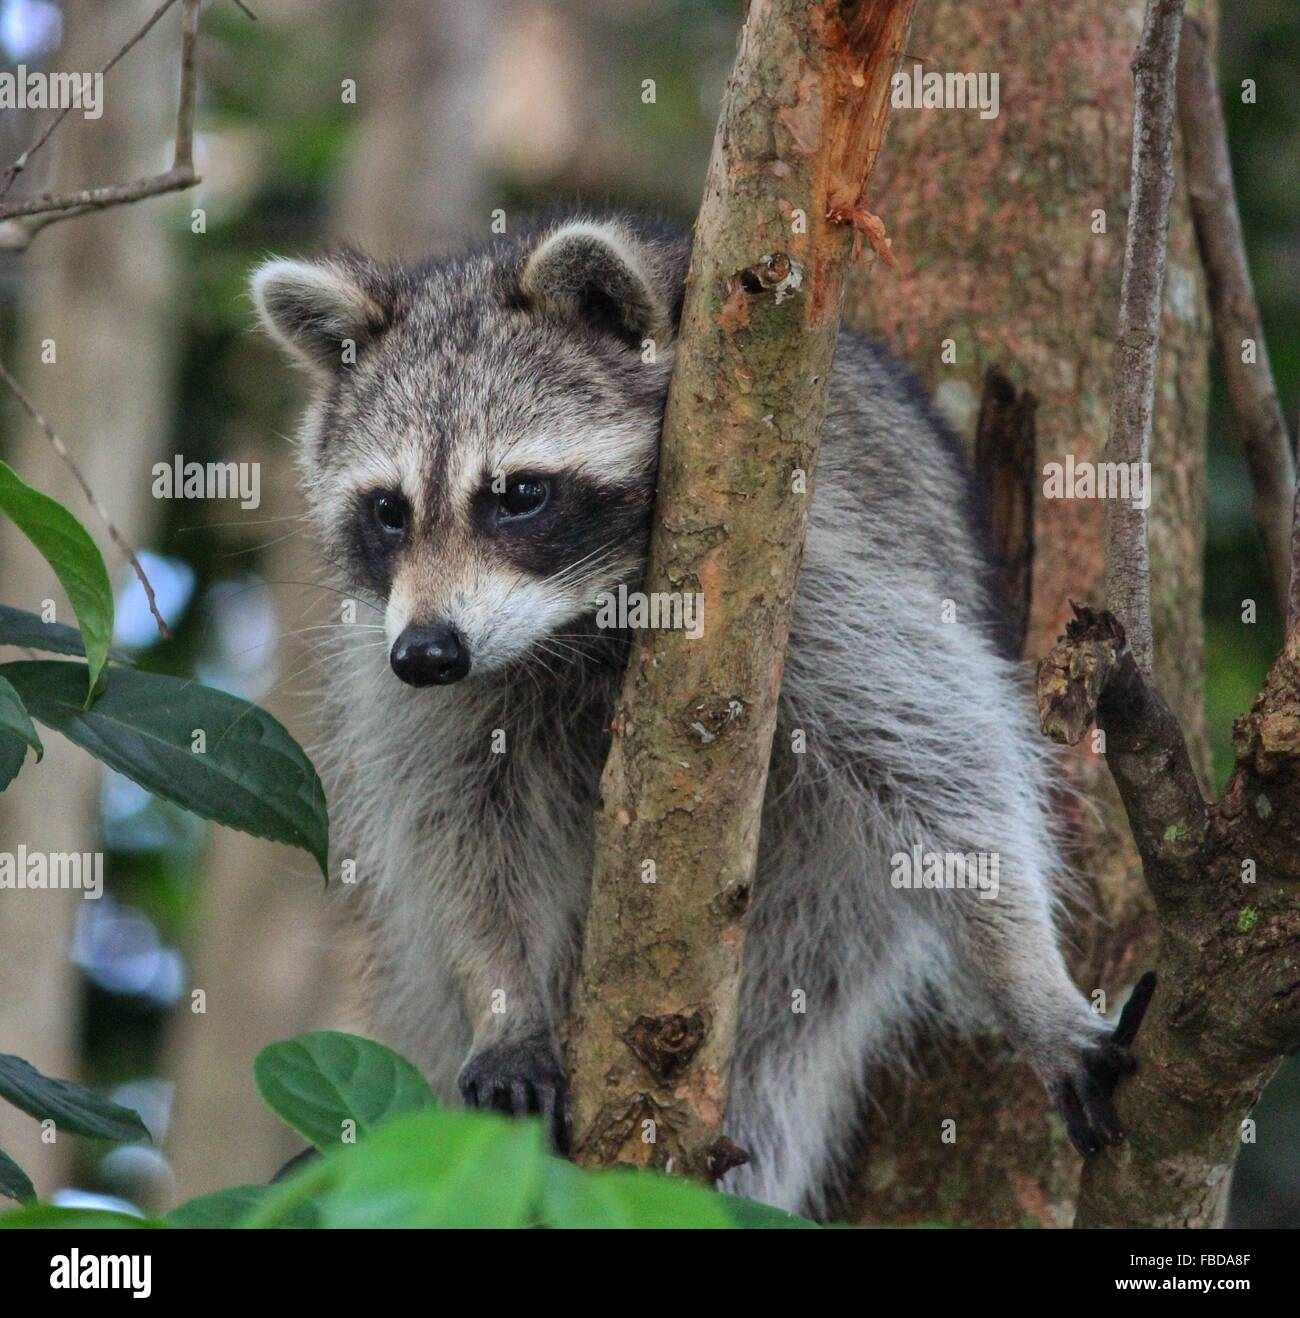 close up of raccoon on tree in forest stock photo royalty free